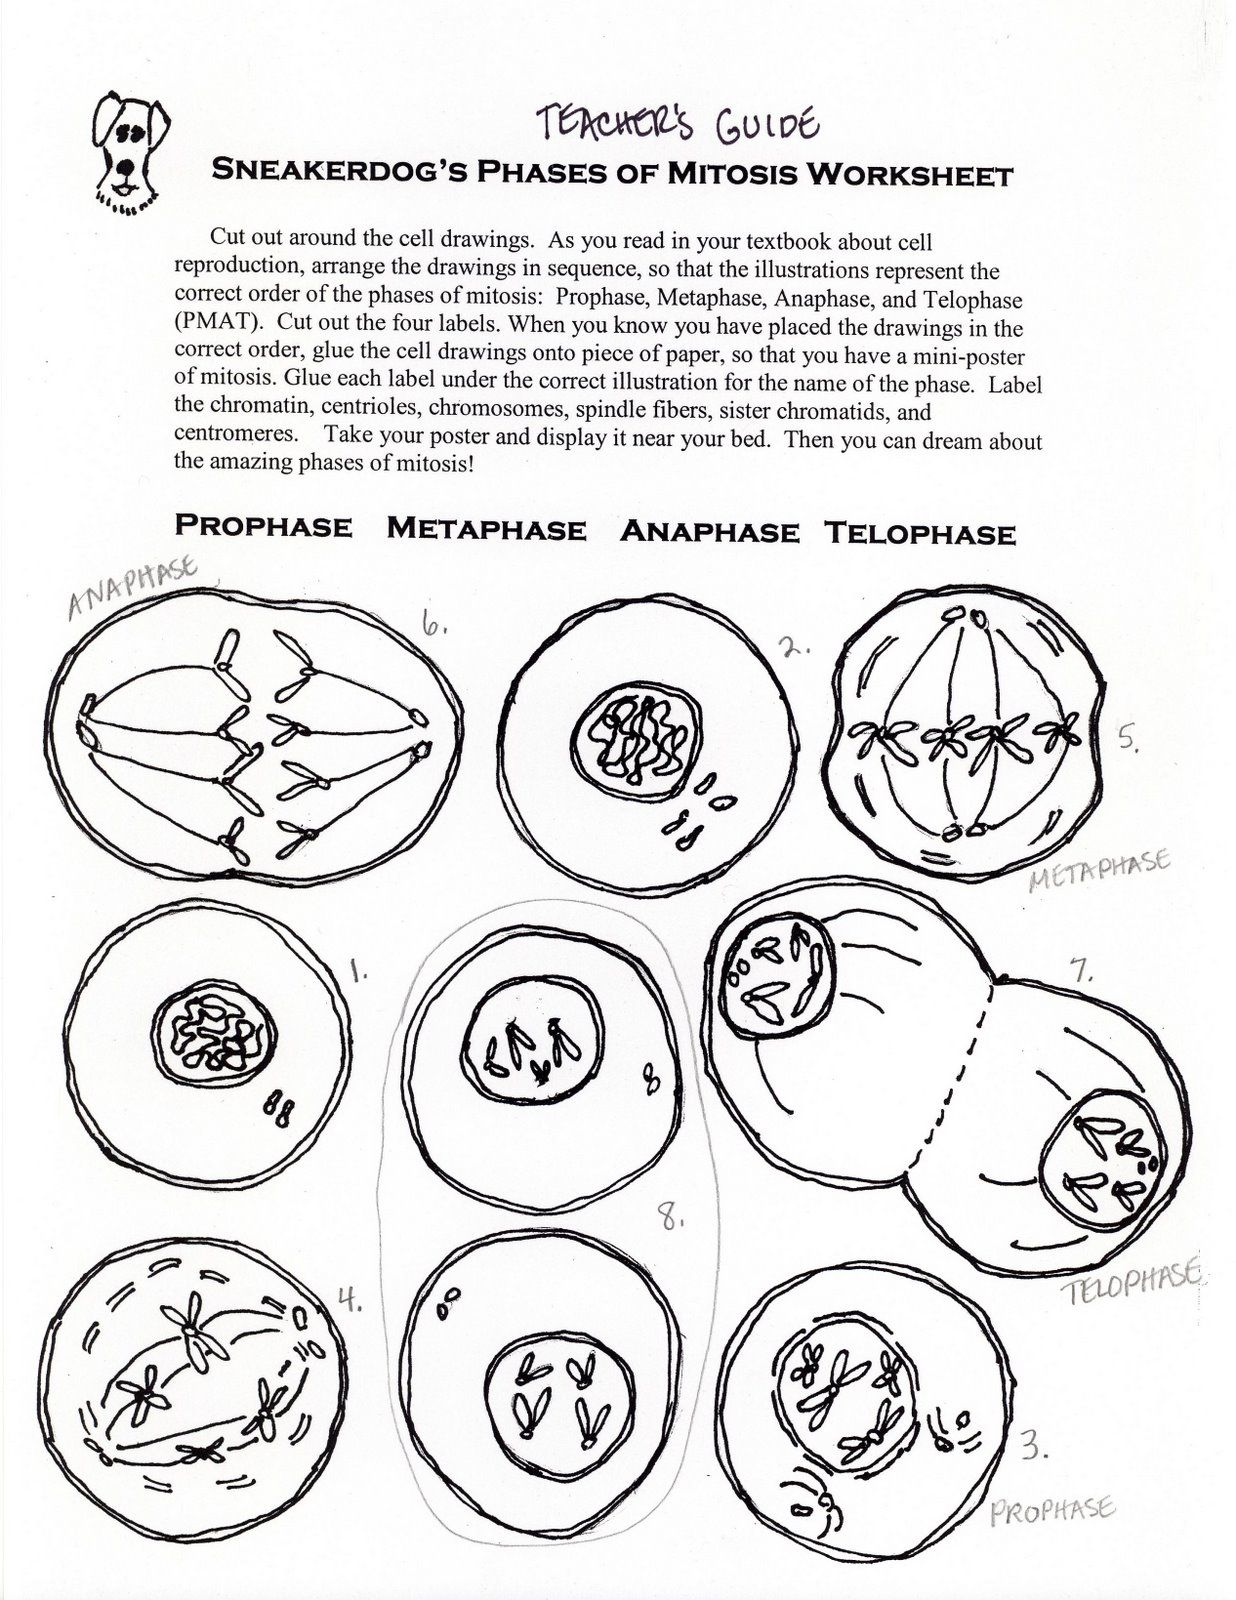 life science cells coloring pages - photo#20